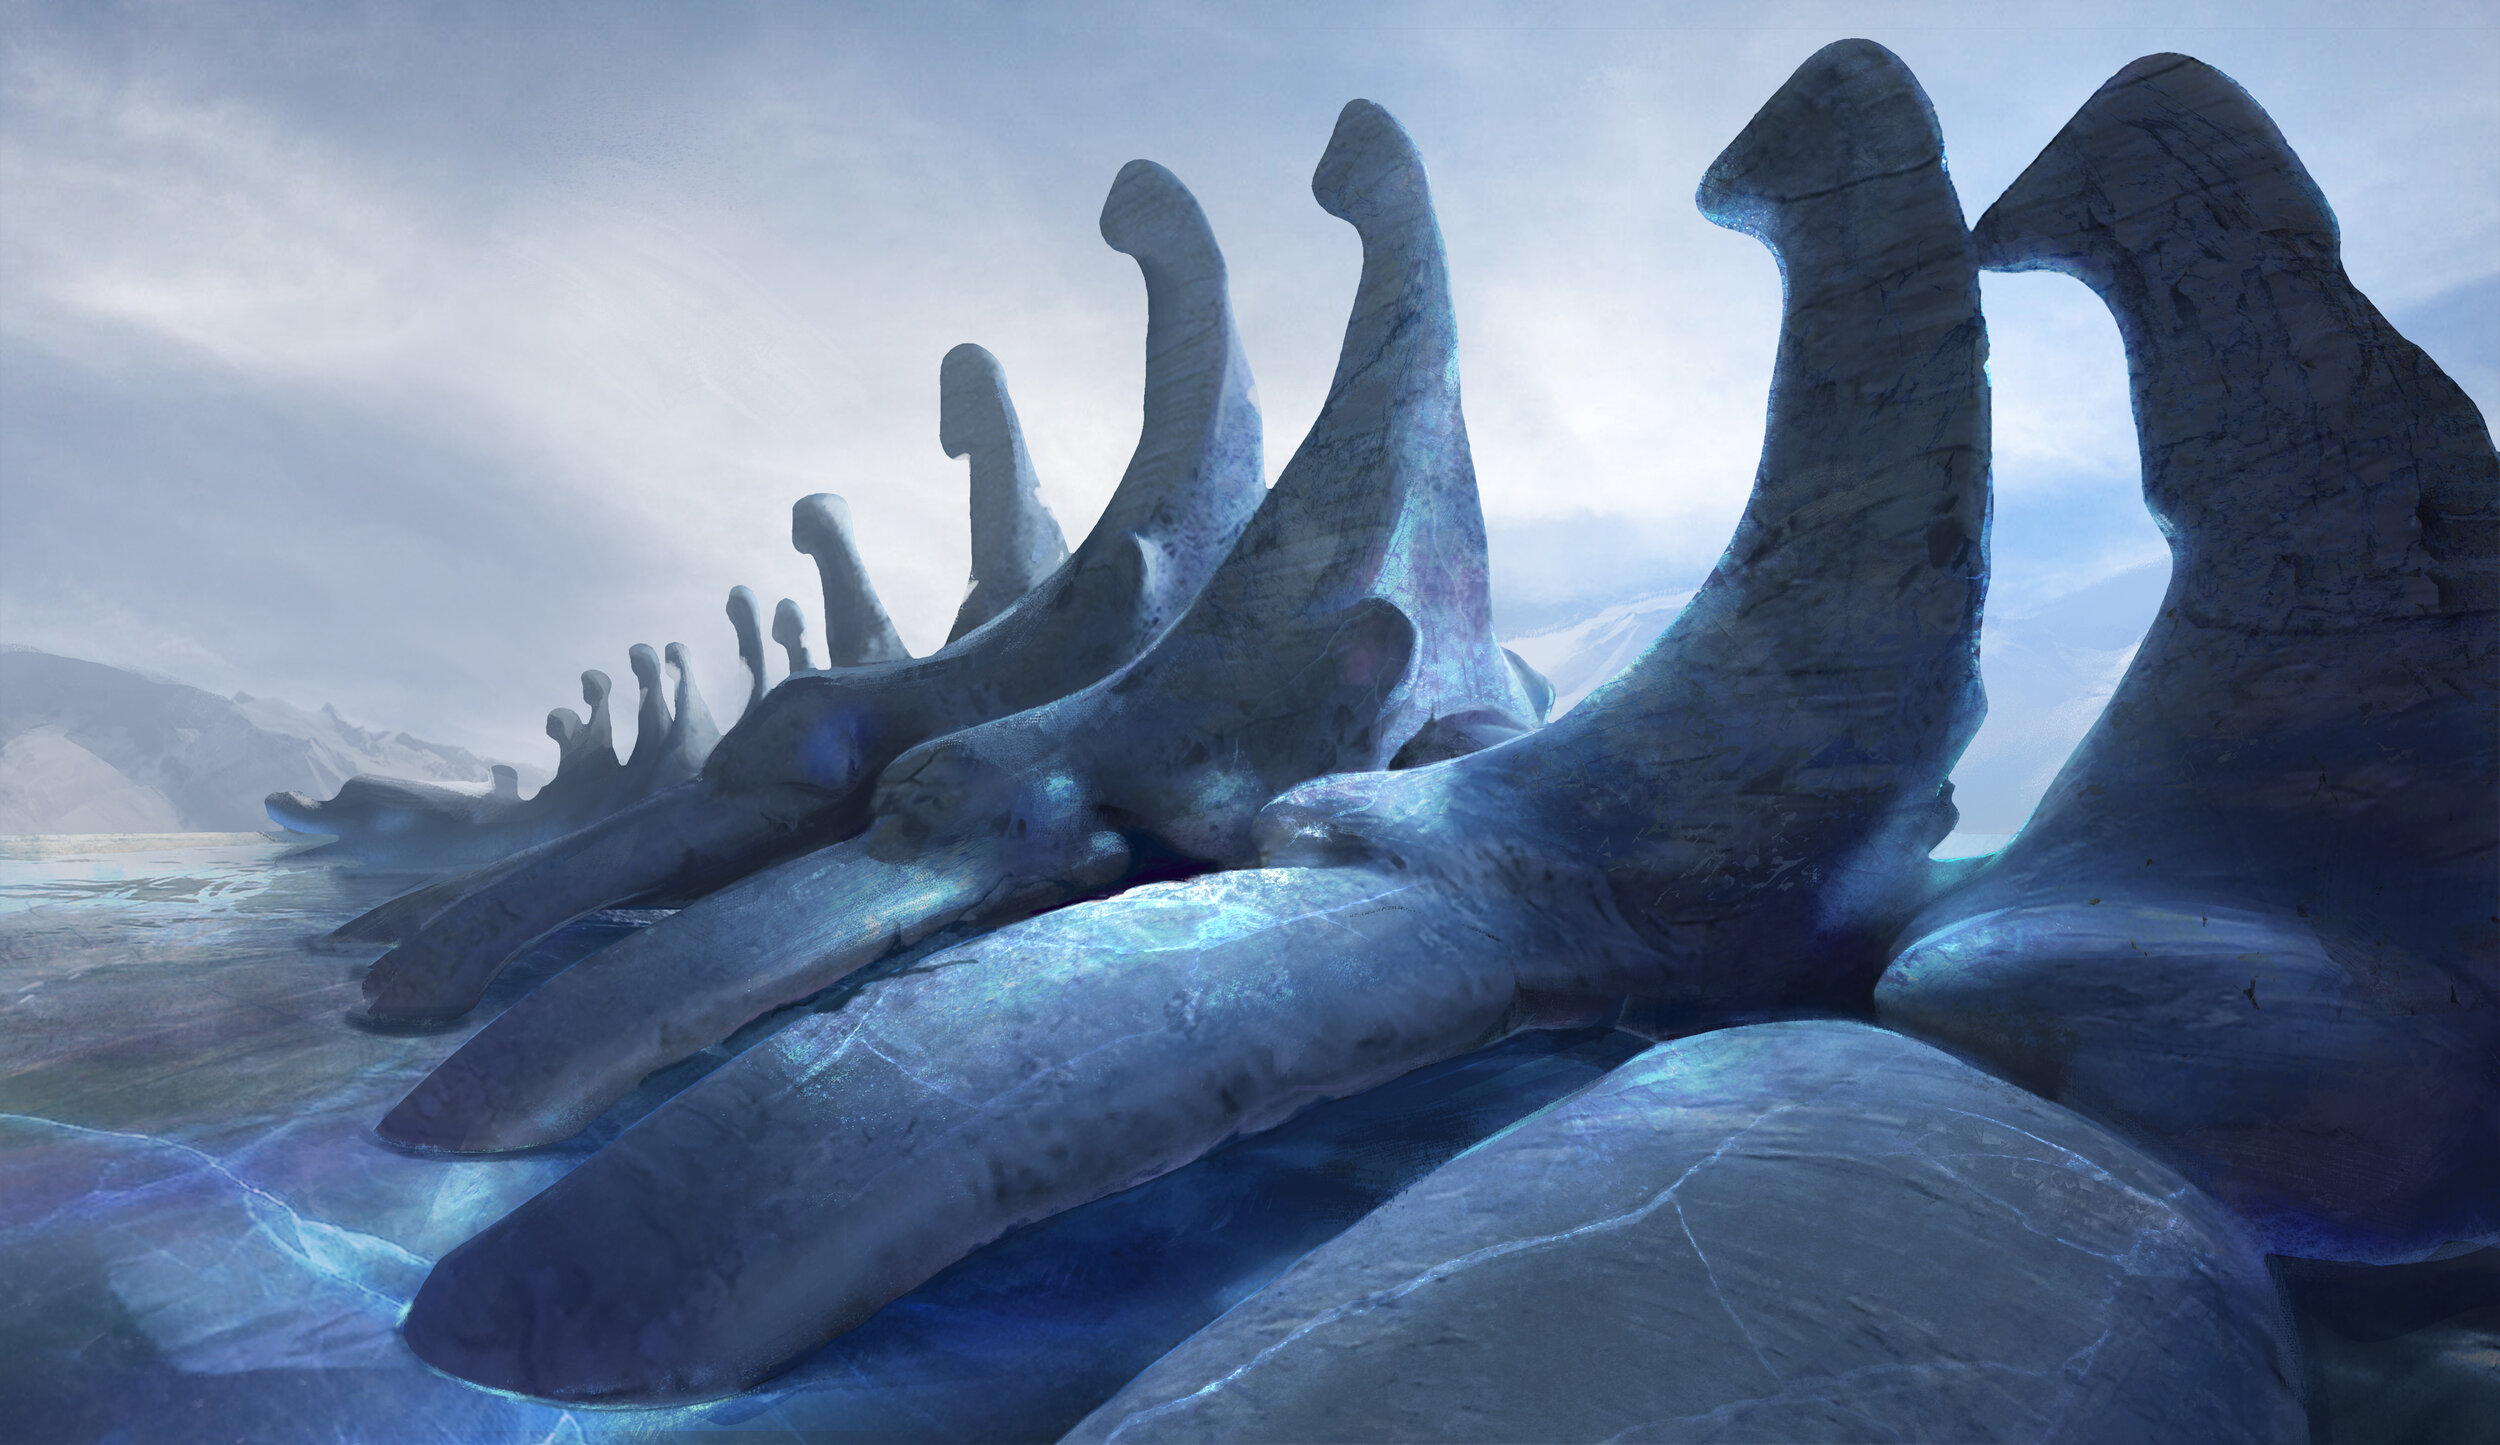 The Whale Spine 2.jpg